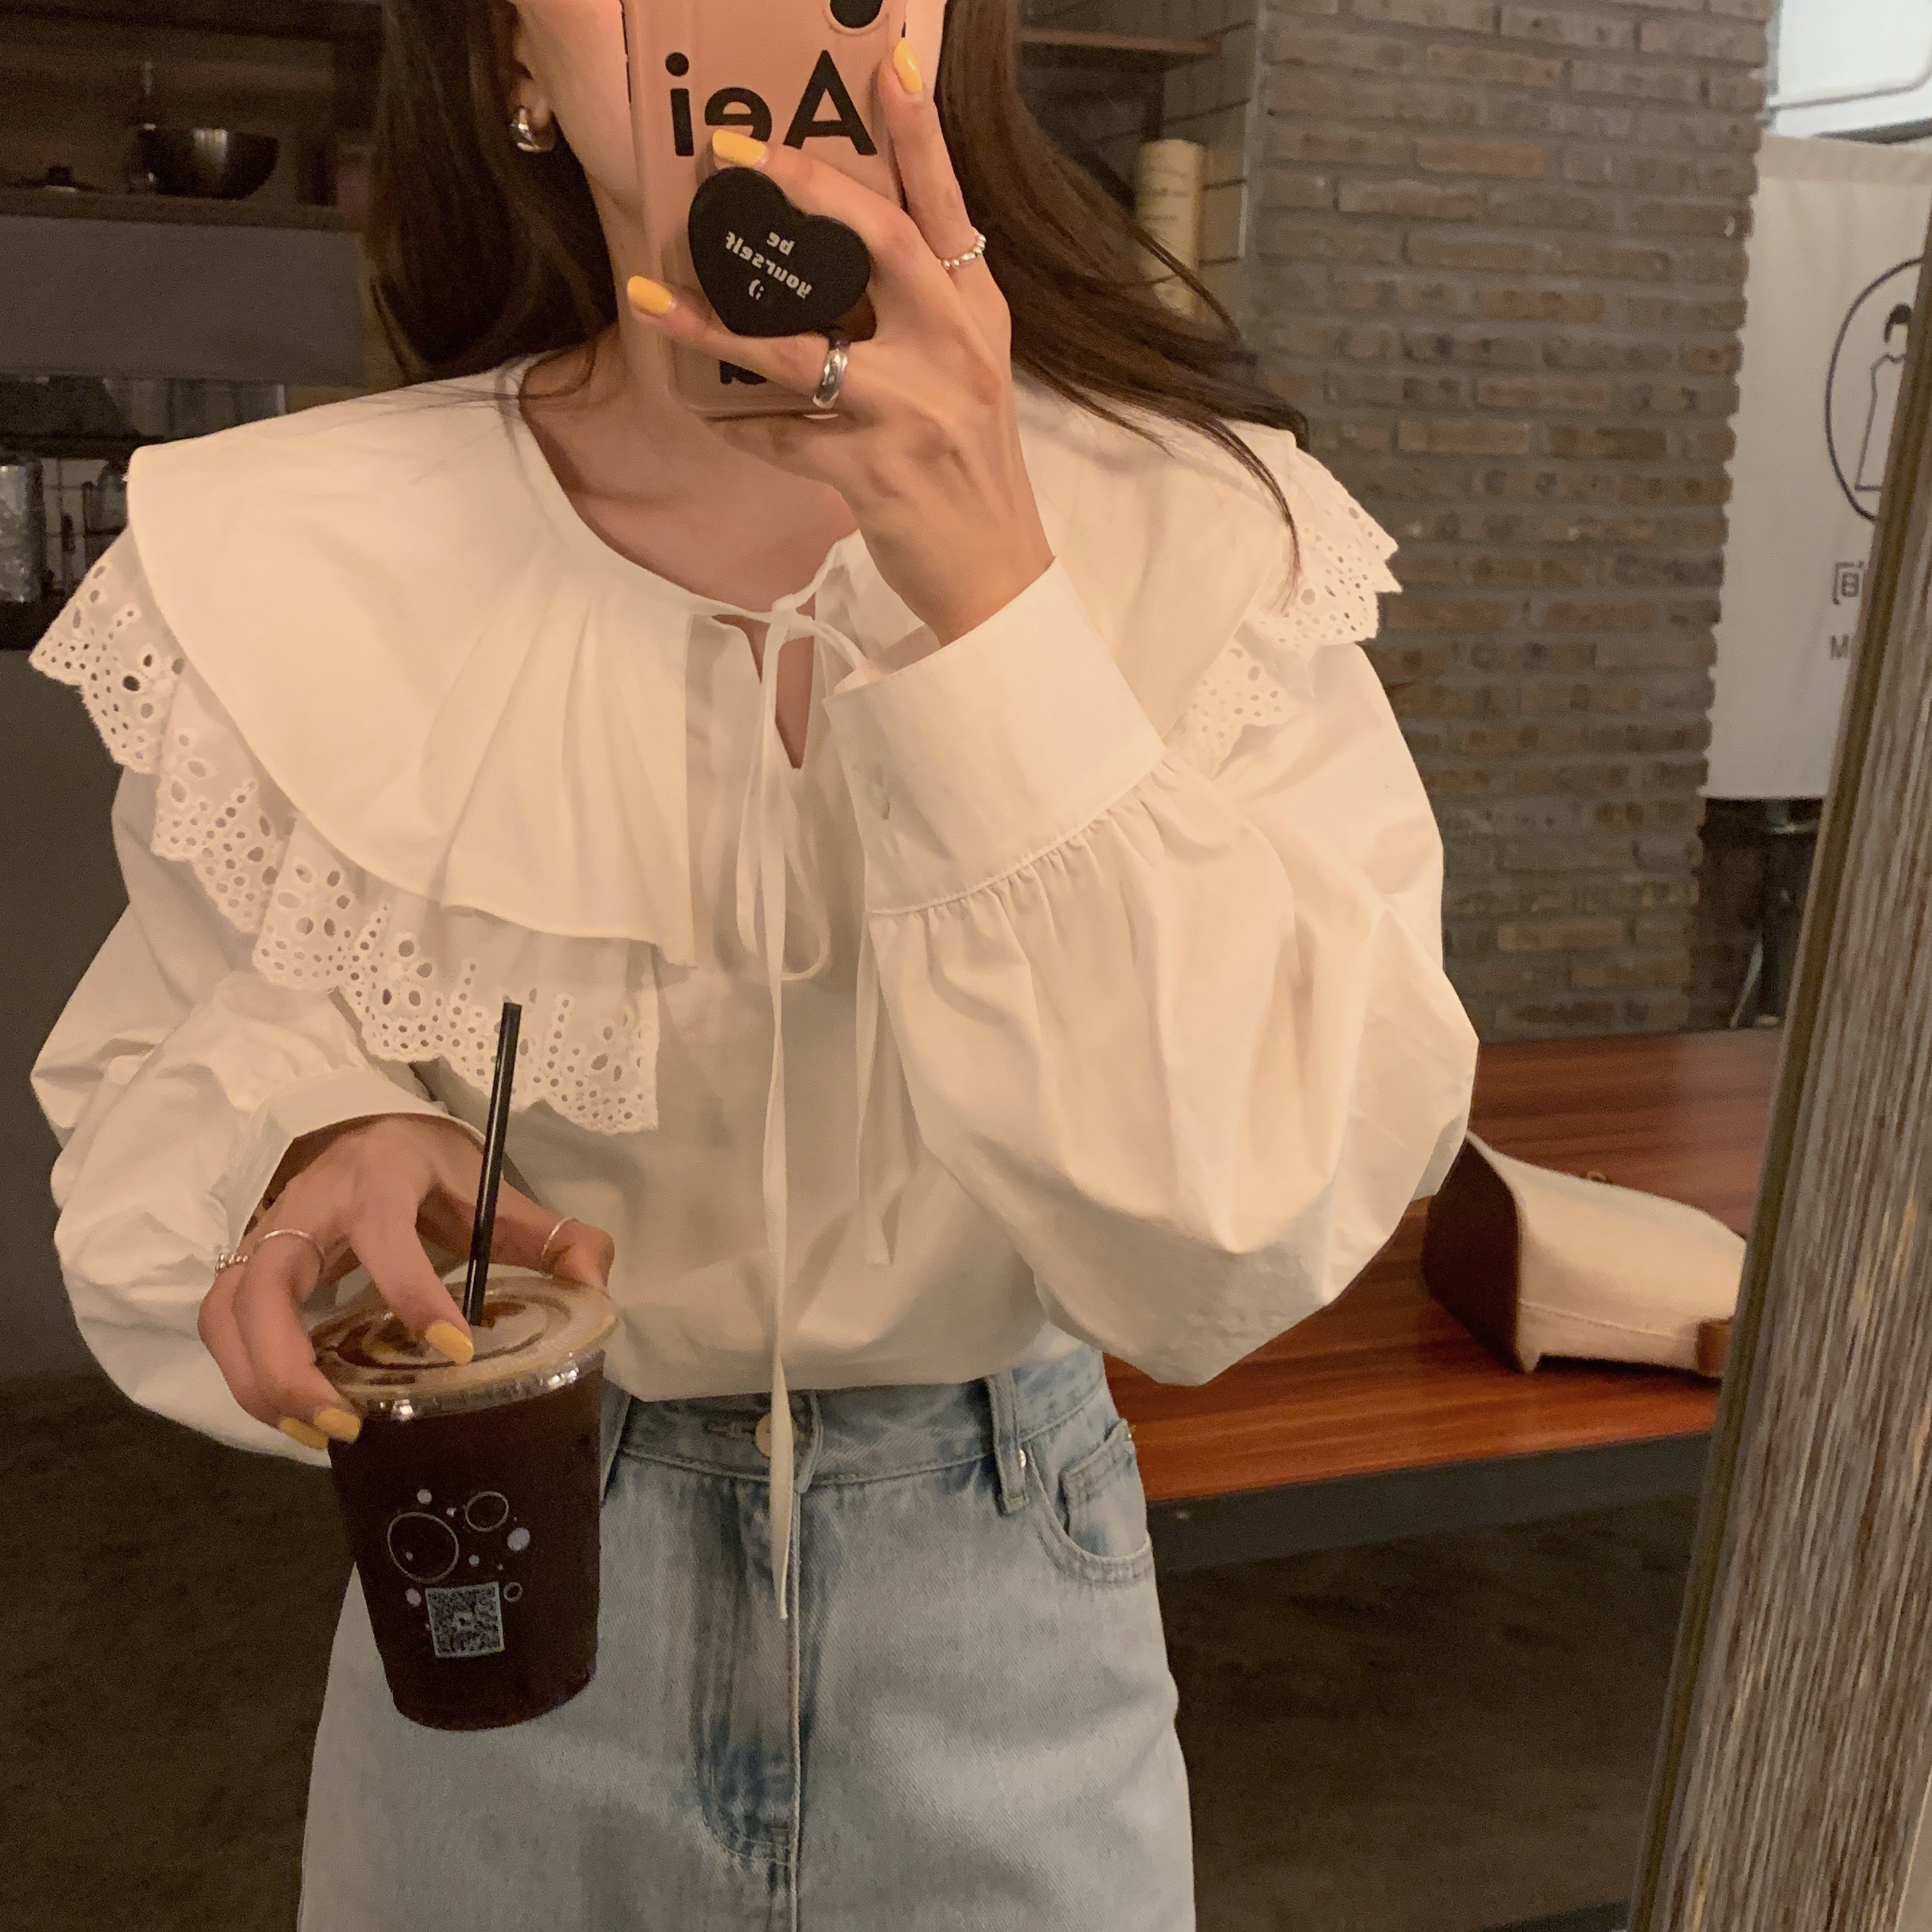 Hcb43b7bfb0064ce59b9f15a50f41e1791 - Spring / Autumn Korean Lace-Up Hollow Out Collar Long Sleeves Loose Solid Blouse